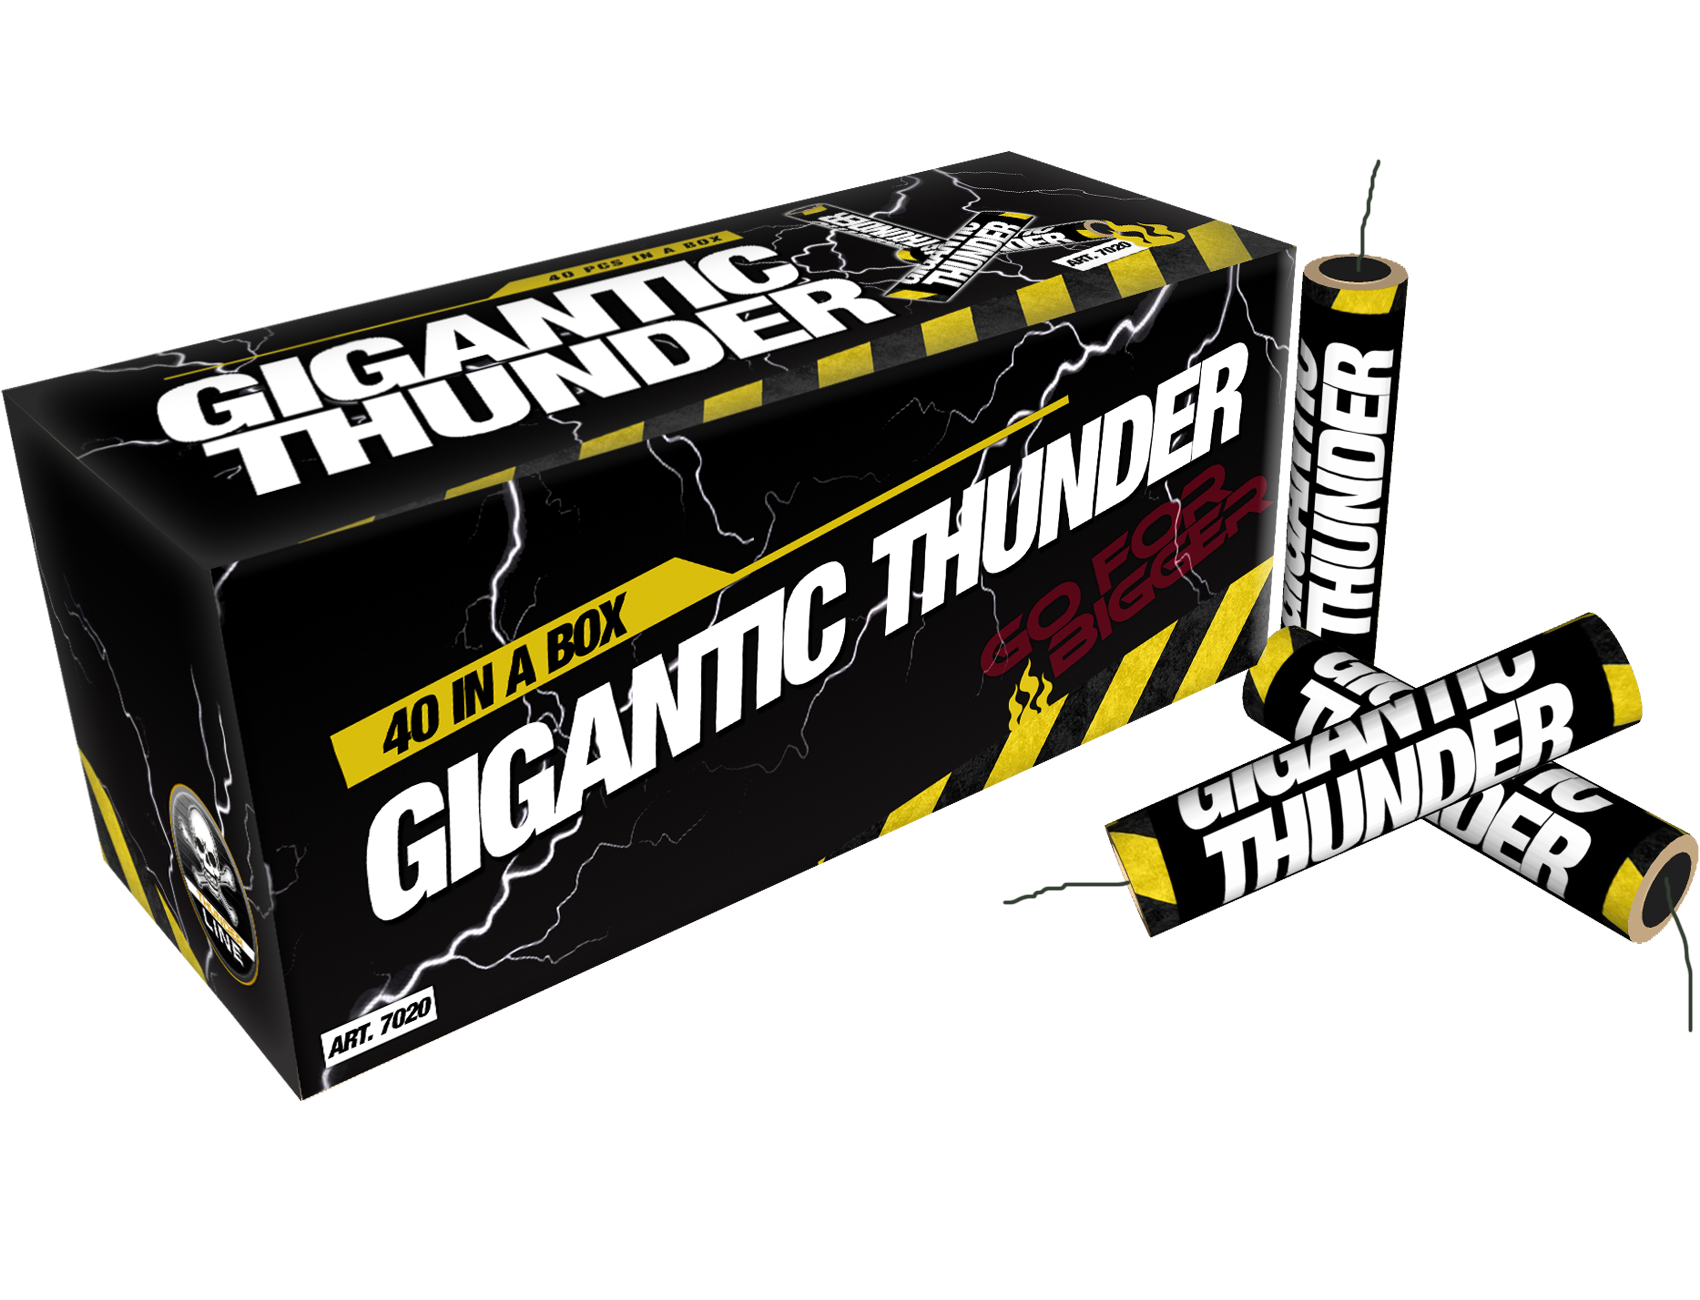 Gigantic Thunders